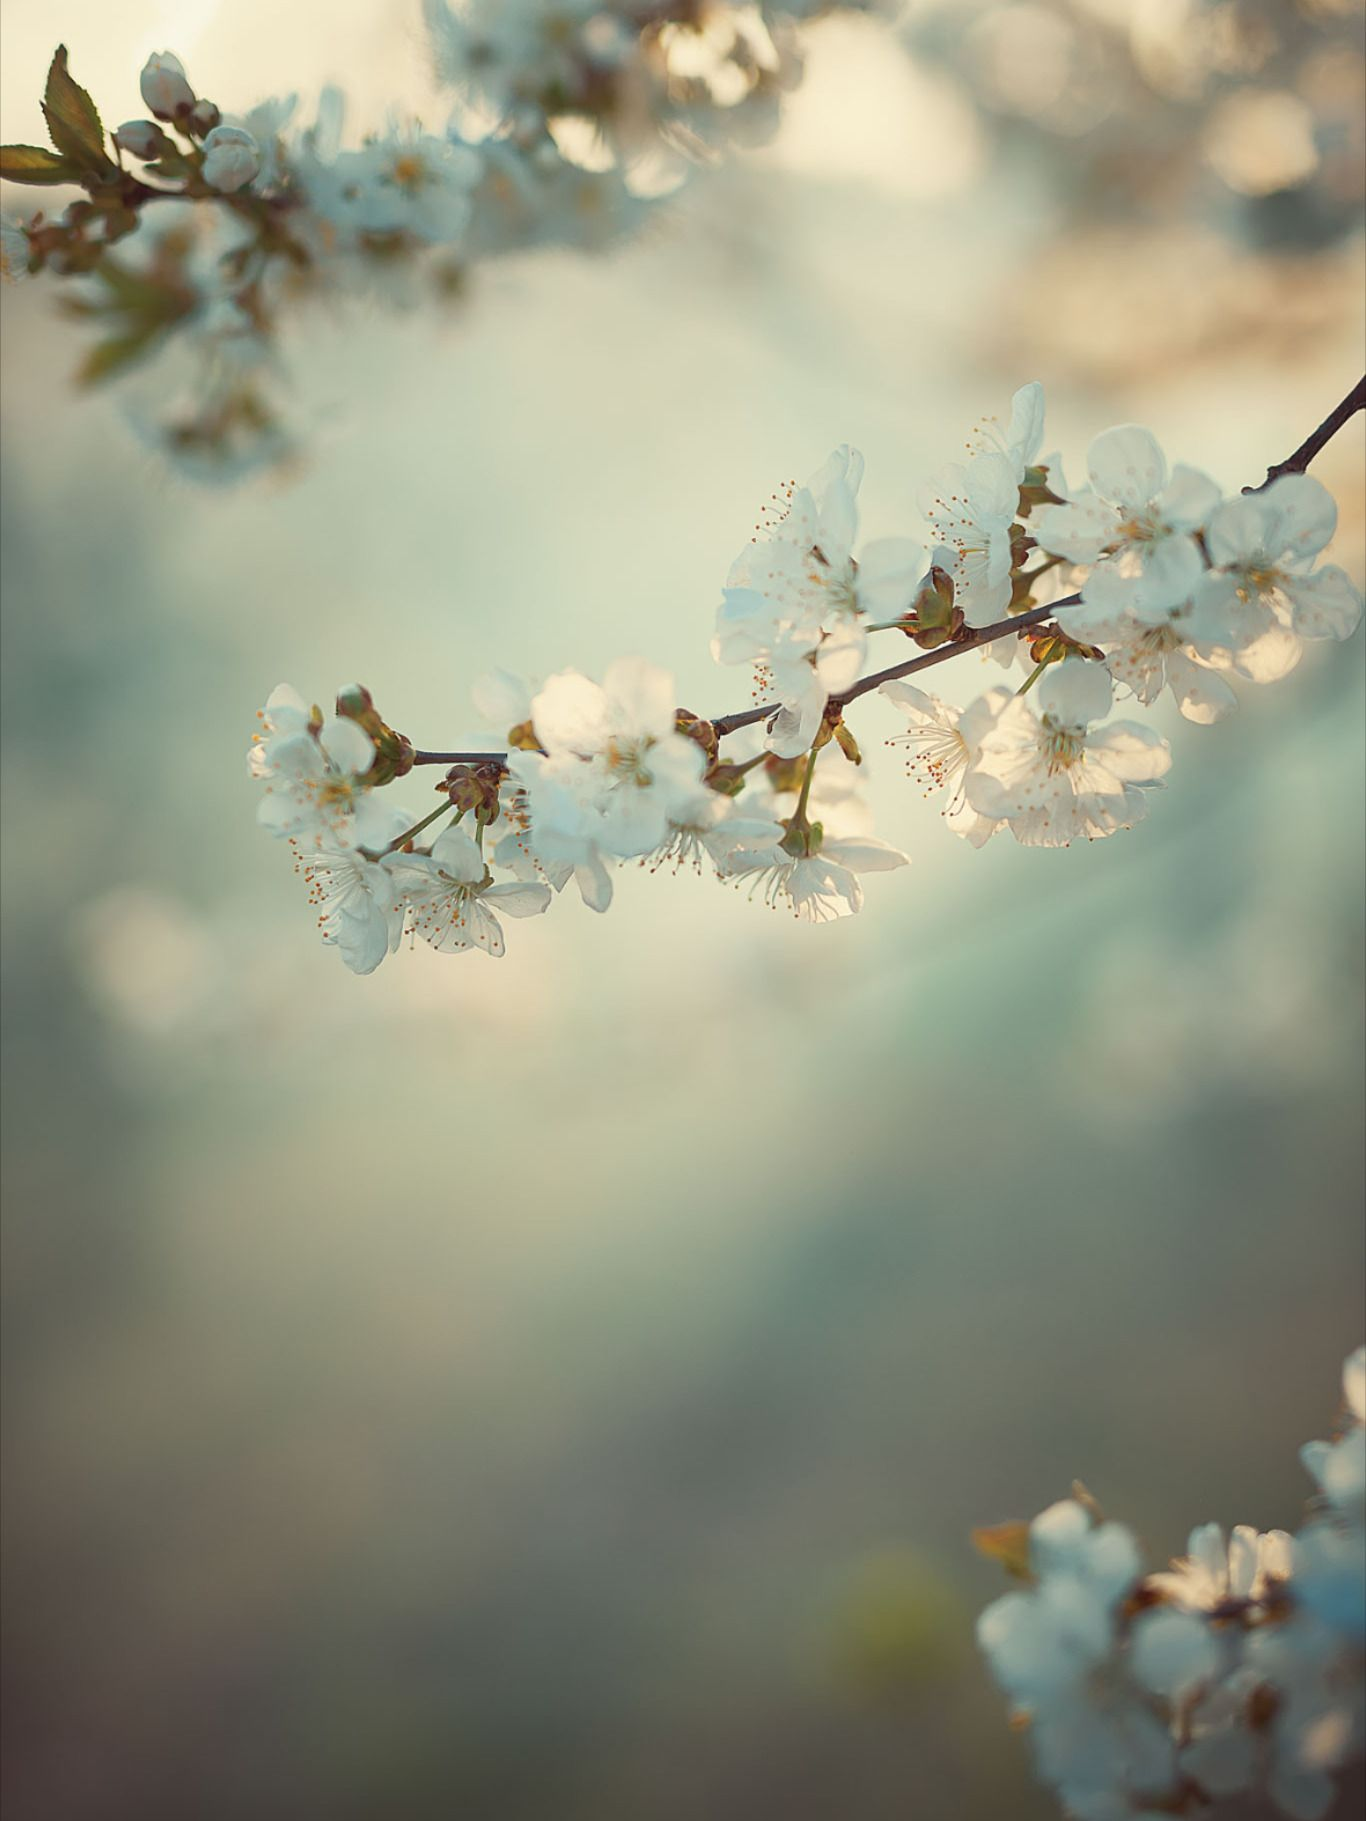 Pin By Paris Miller On Background Blossom Cherry Blossom Joy And Happiness